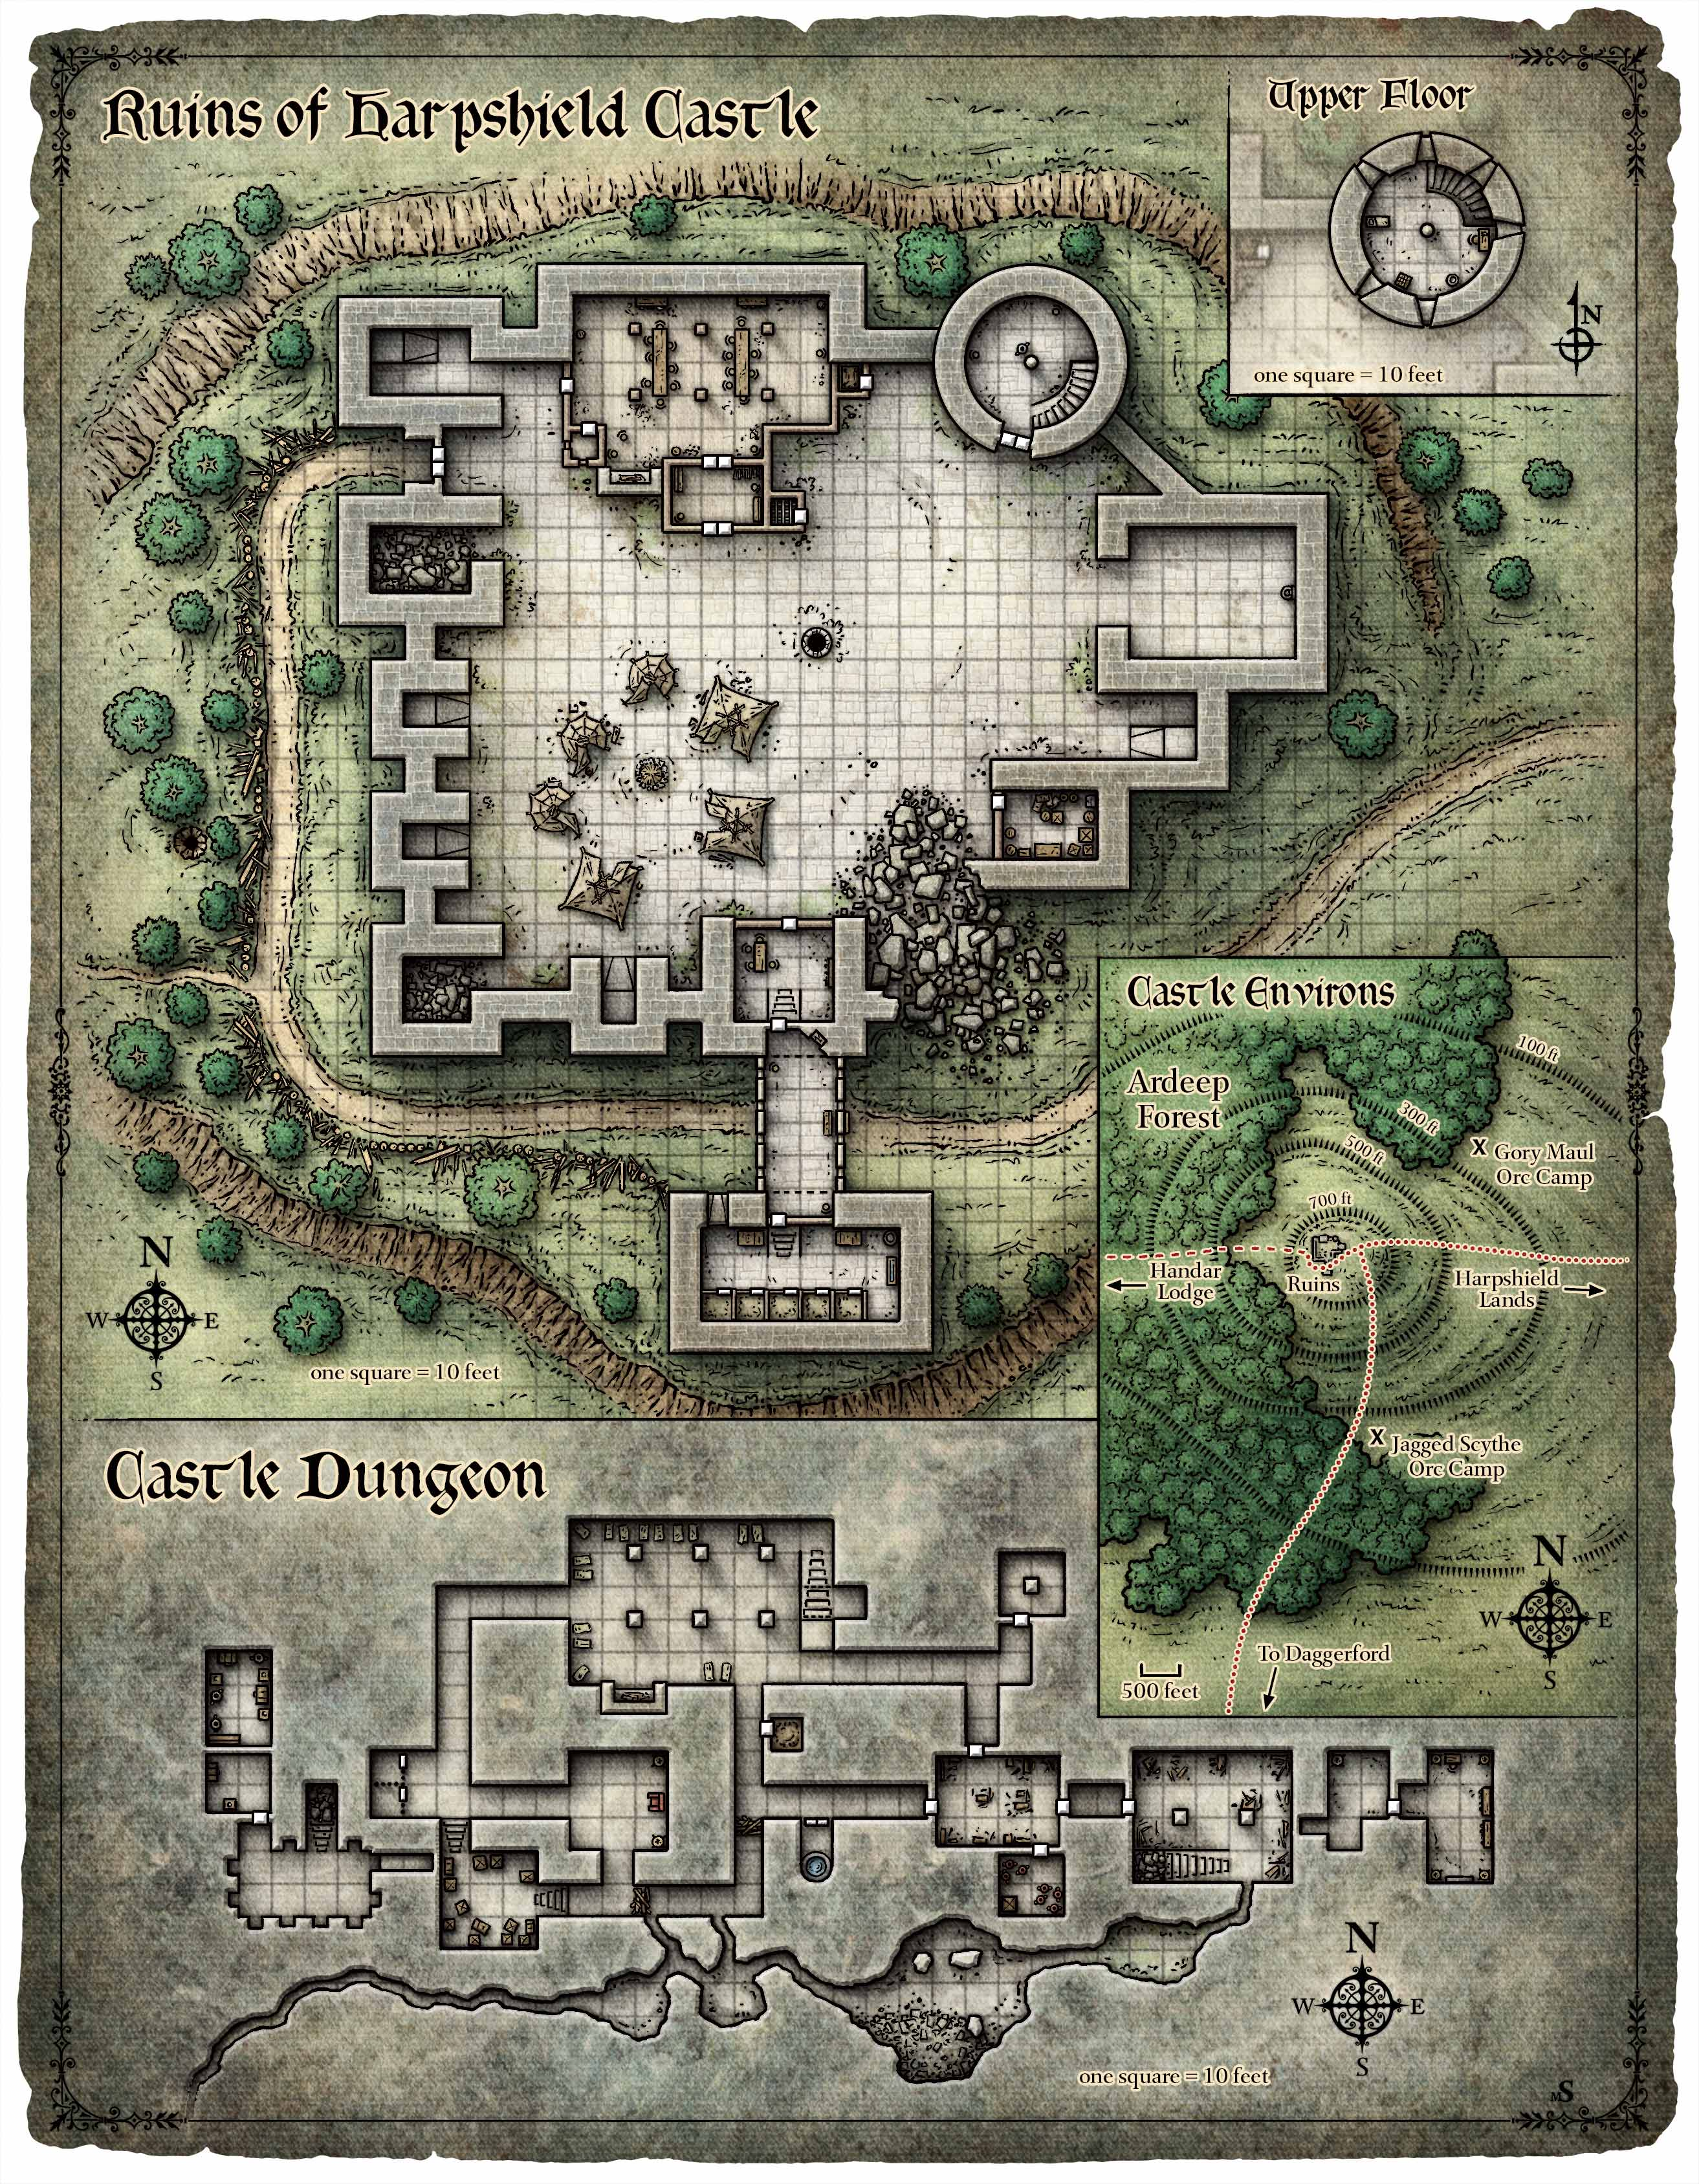 Cartes/Maps » Dungeons & Dragons - Donjons & Dragons - D&D 5